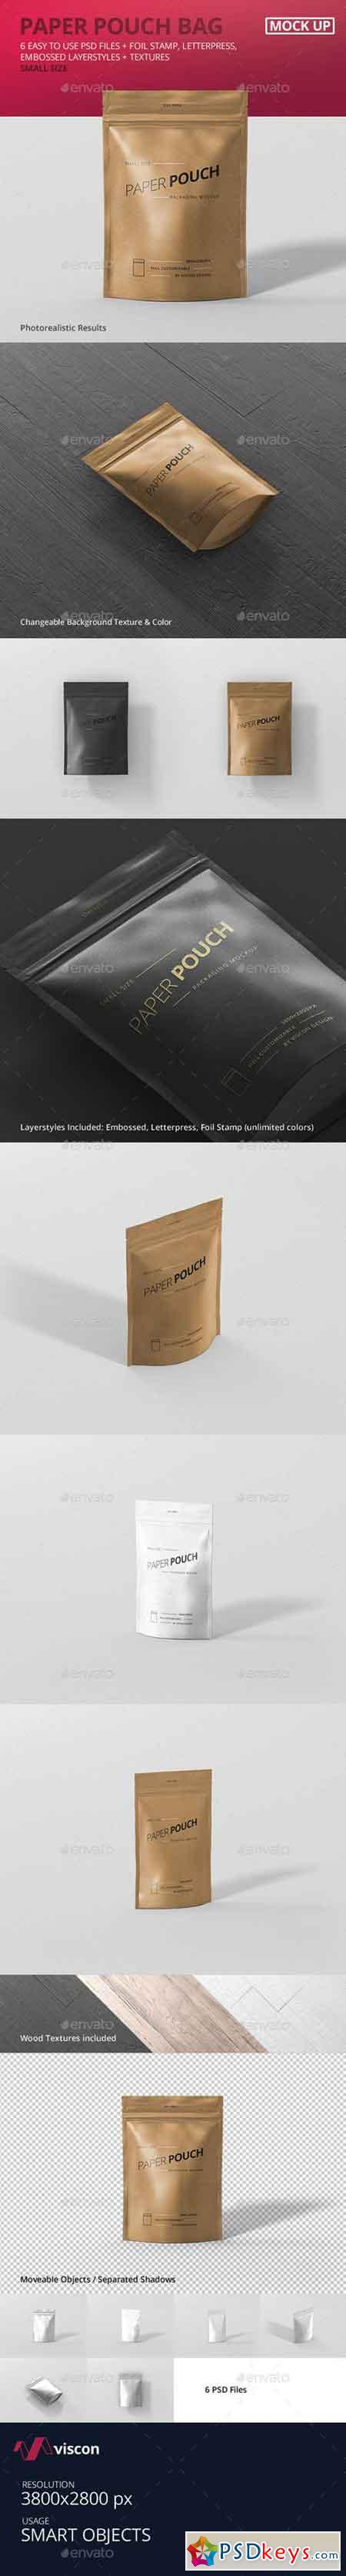 Paper Pouch Bag Mockup Small Size 19389708